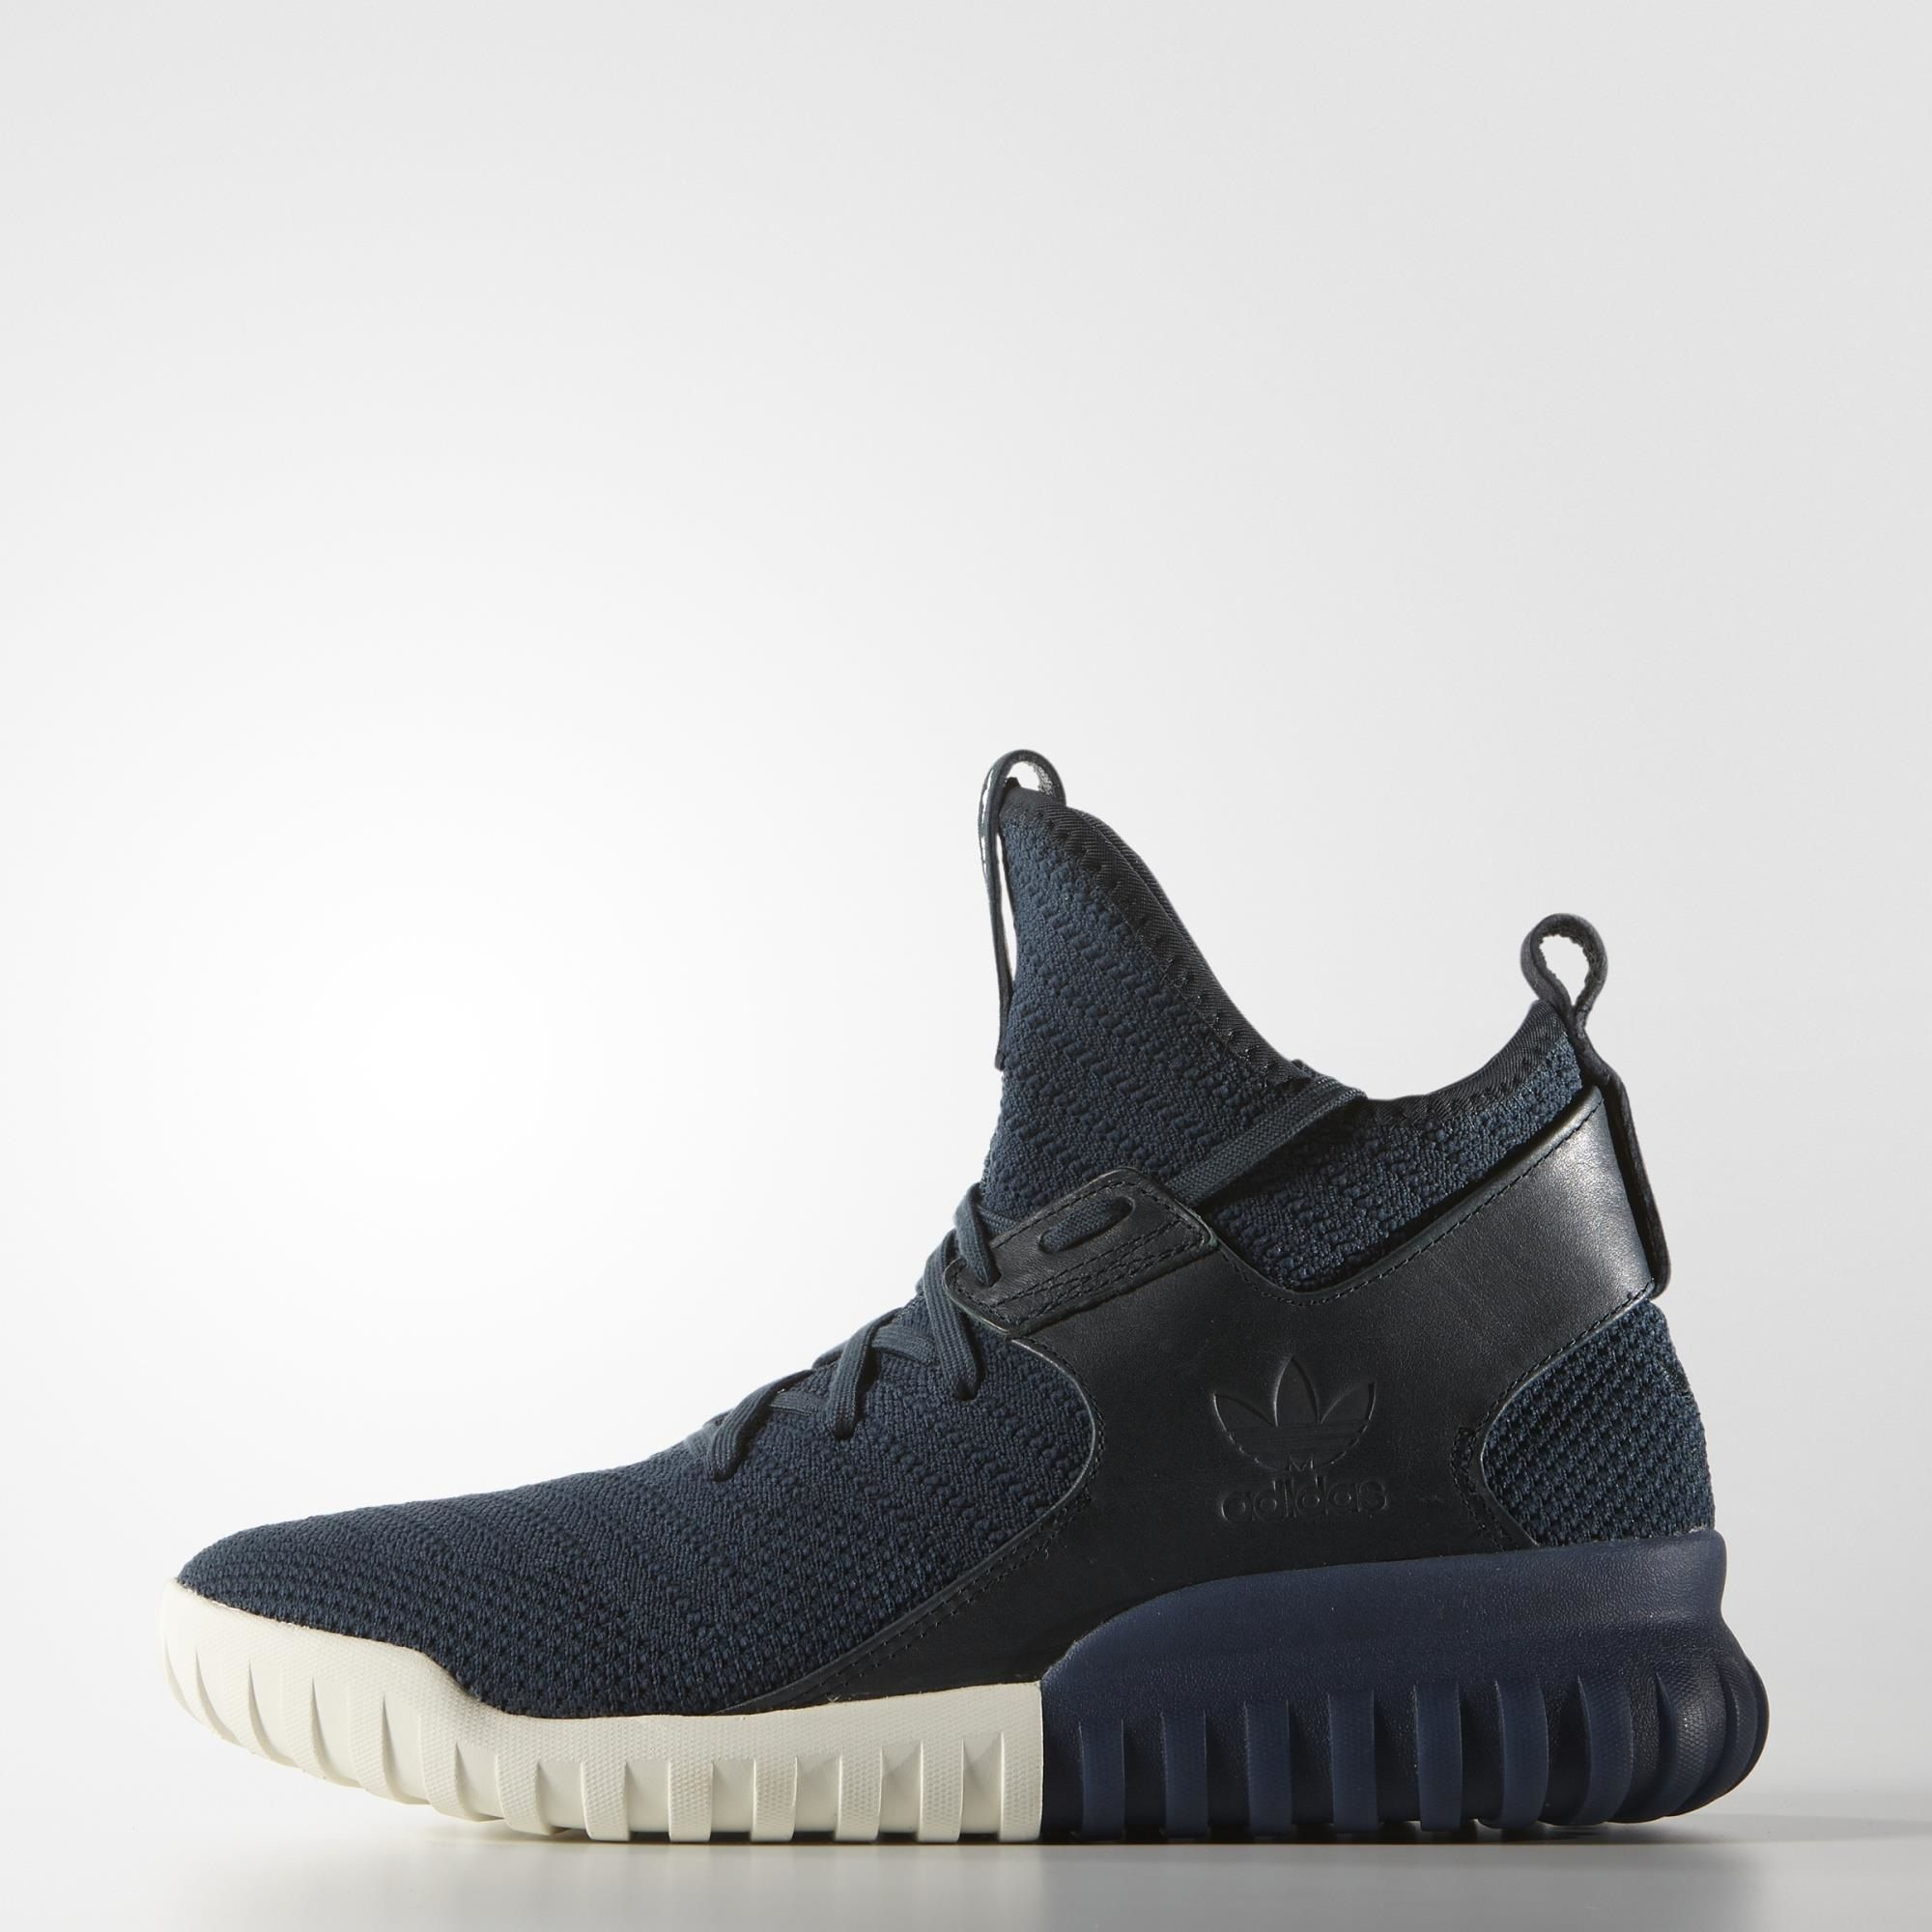 X Shoes | adidas US. Tubular RunnerKnit ...